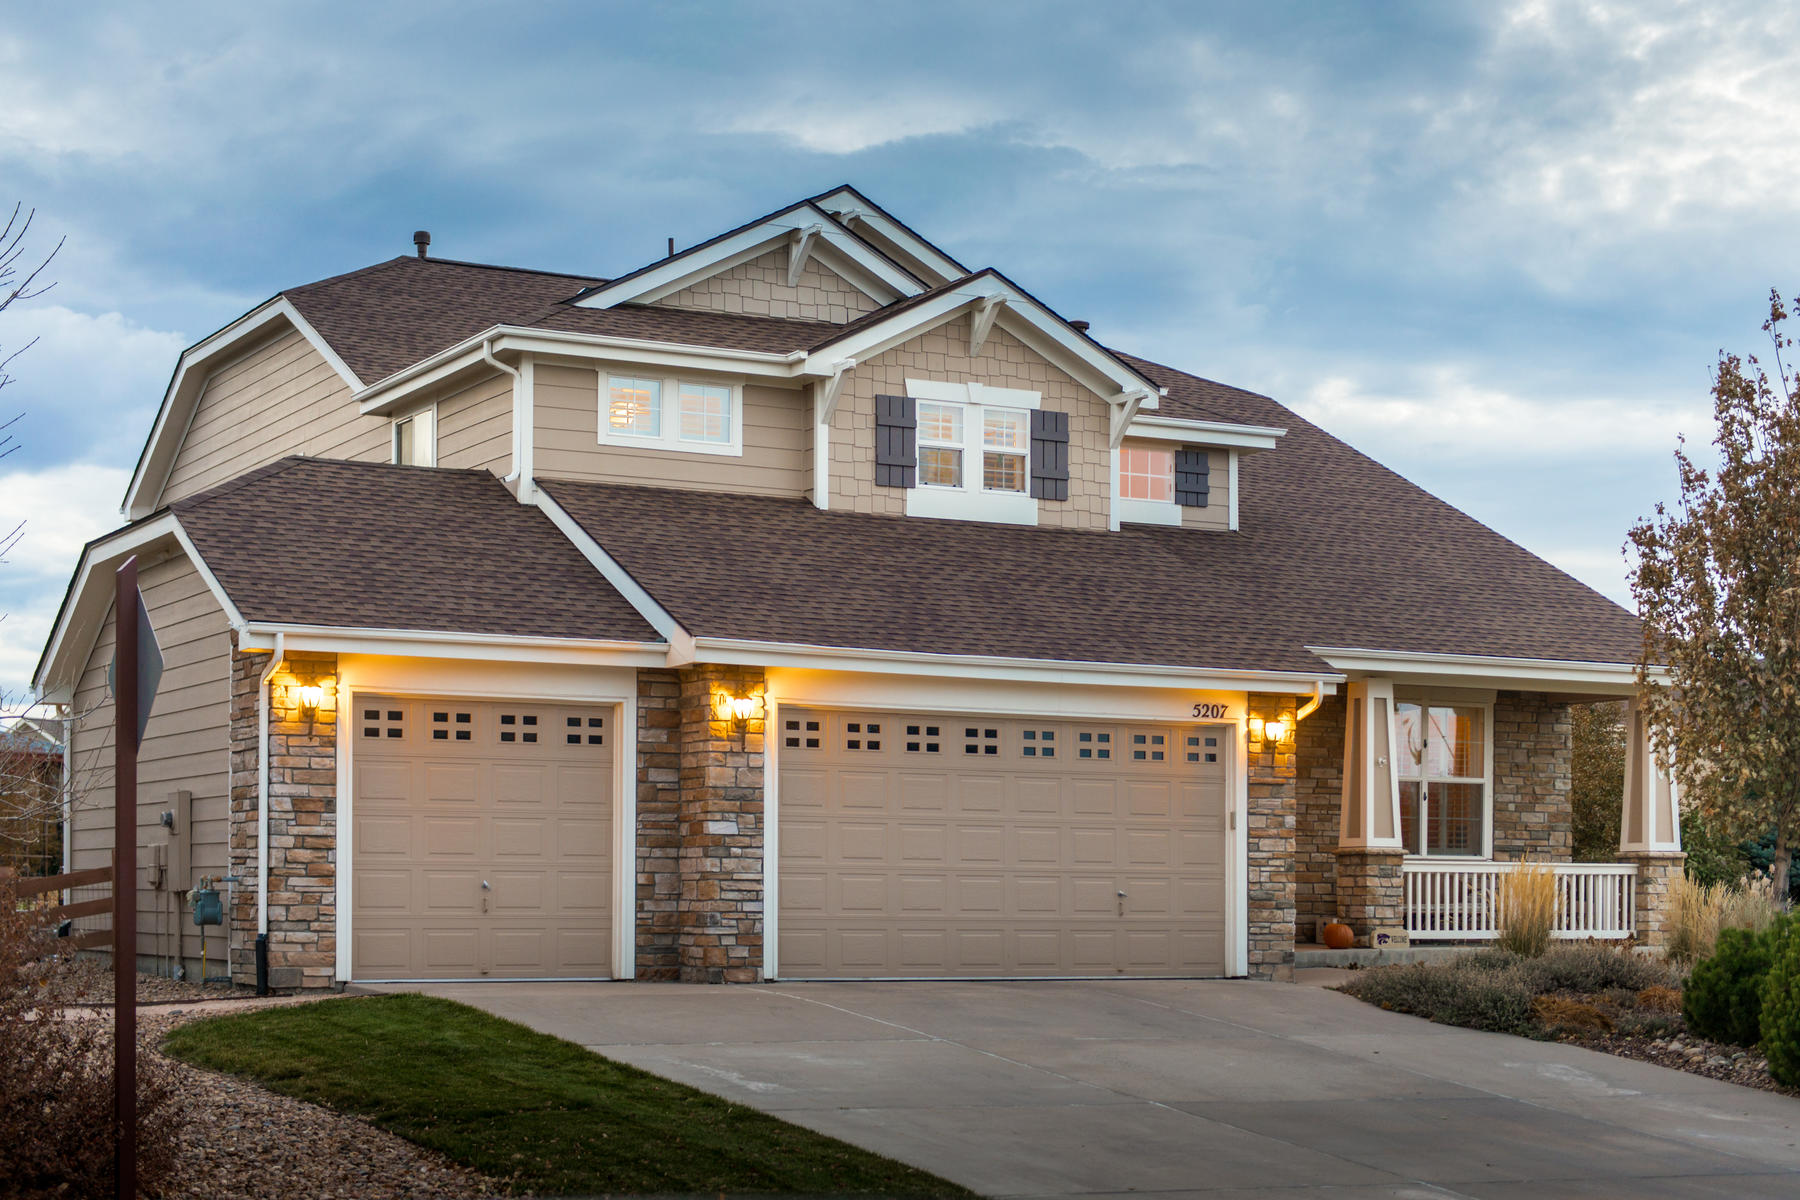 Single Family Home for Active at Gracious Colorado living at its finest! 5207 Denim Ct Parker, Colorado 80134 United States